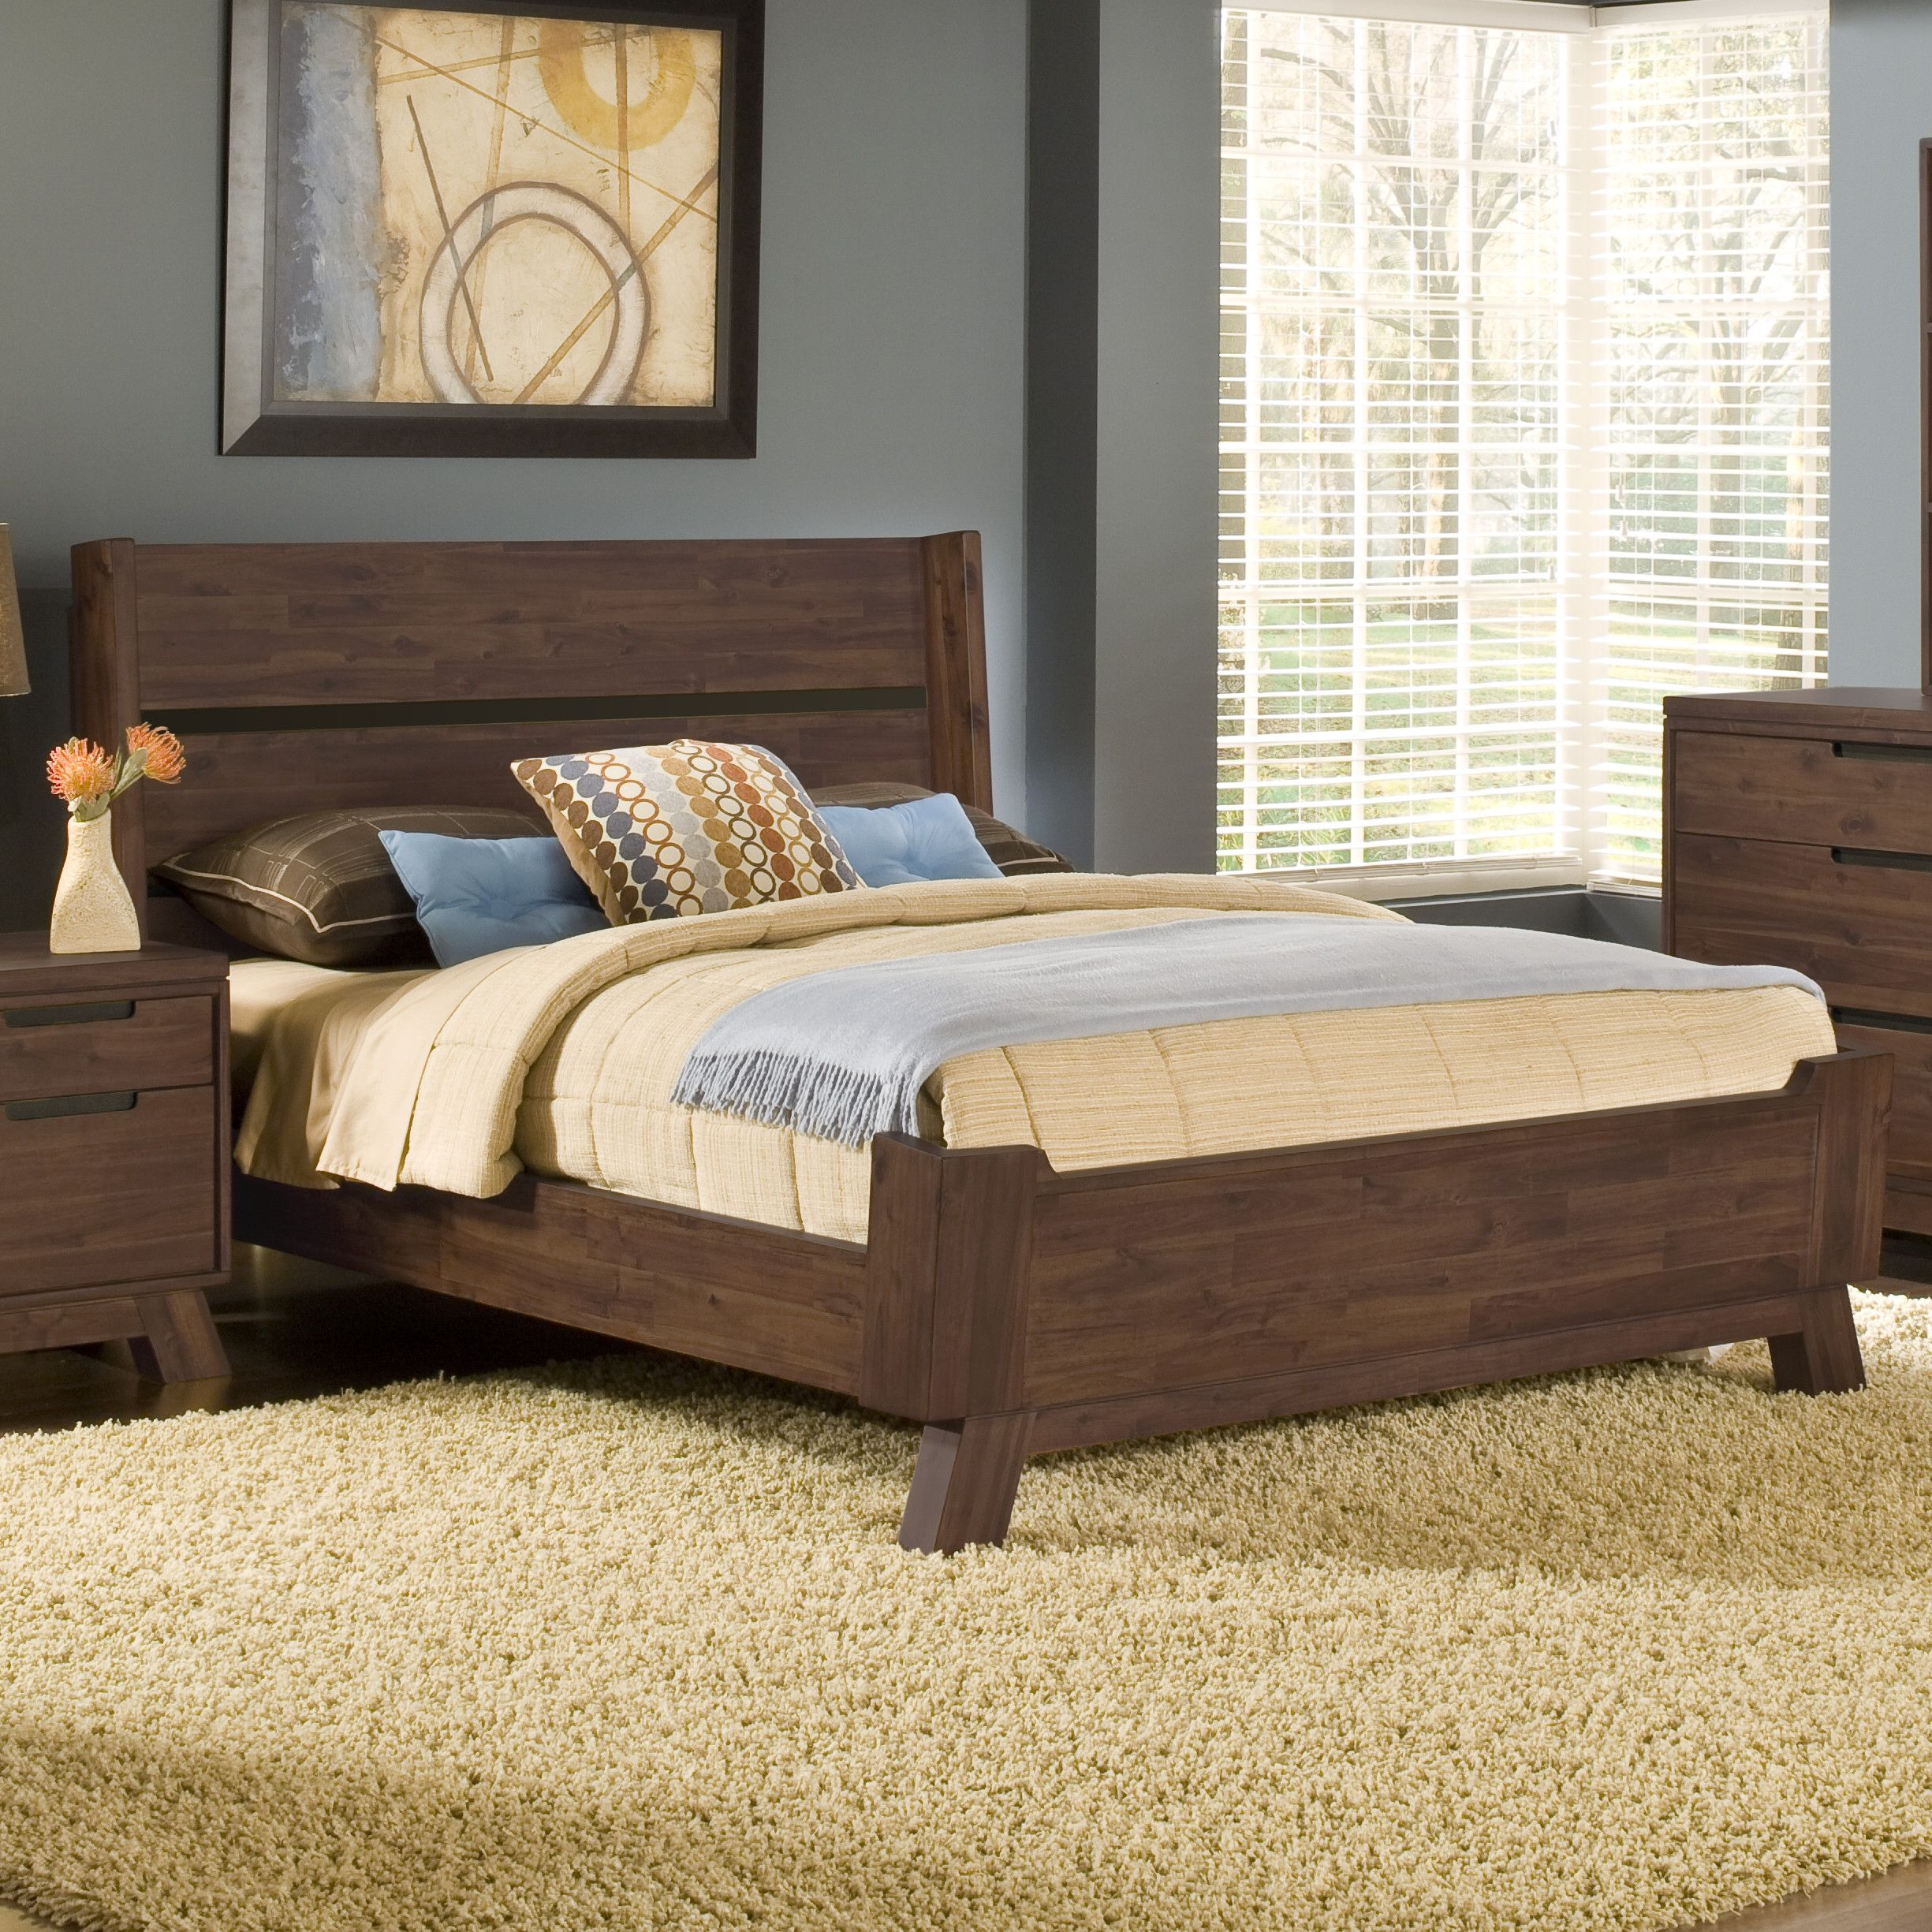 Modus Portland Panel Bed & Reviews - Wayfair